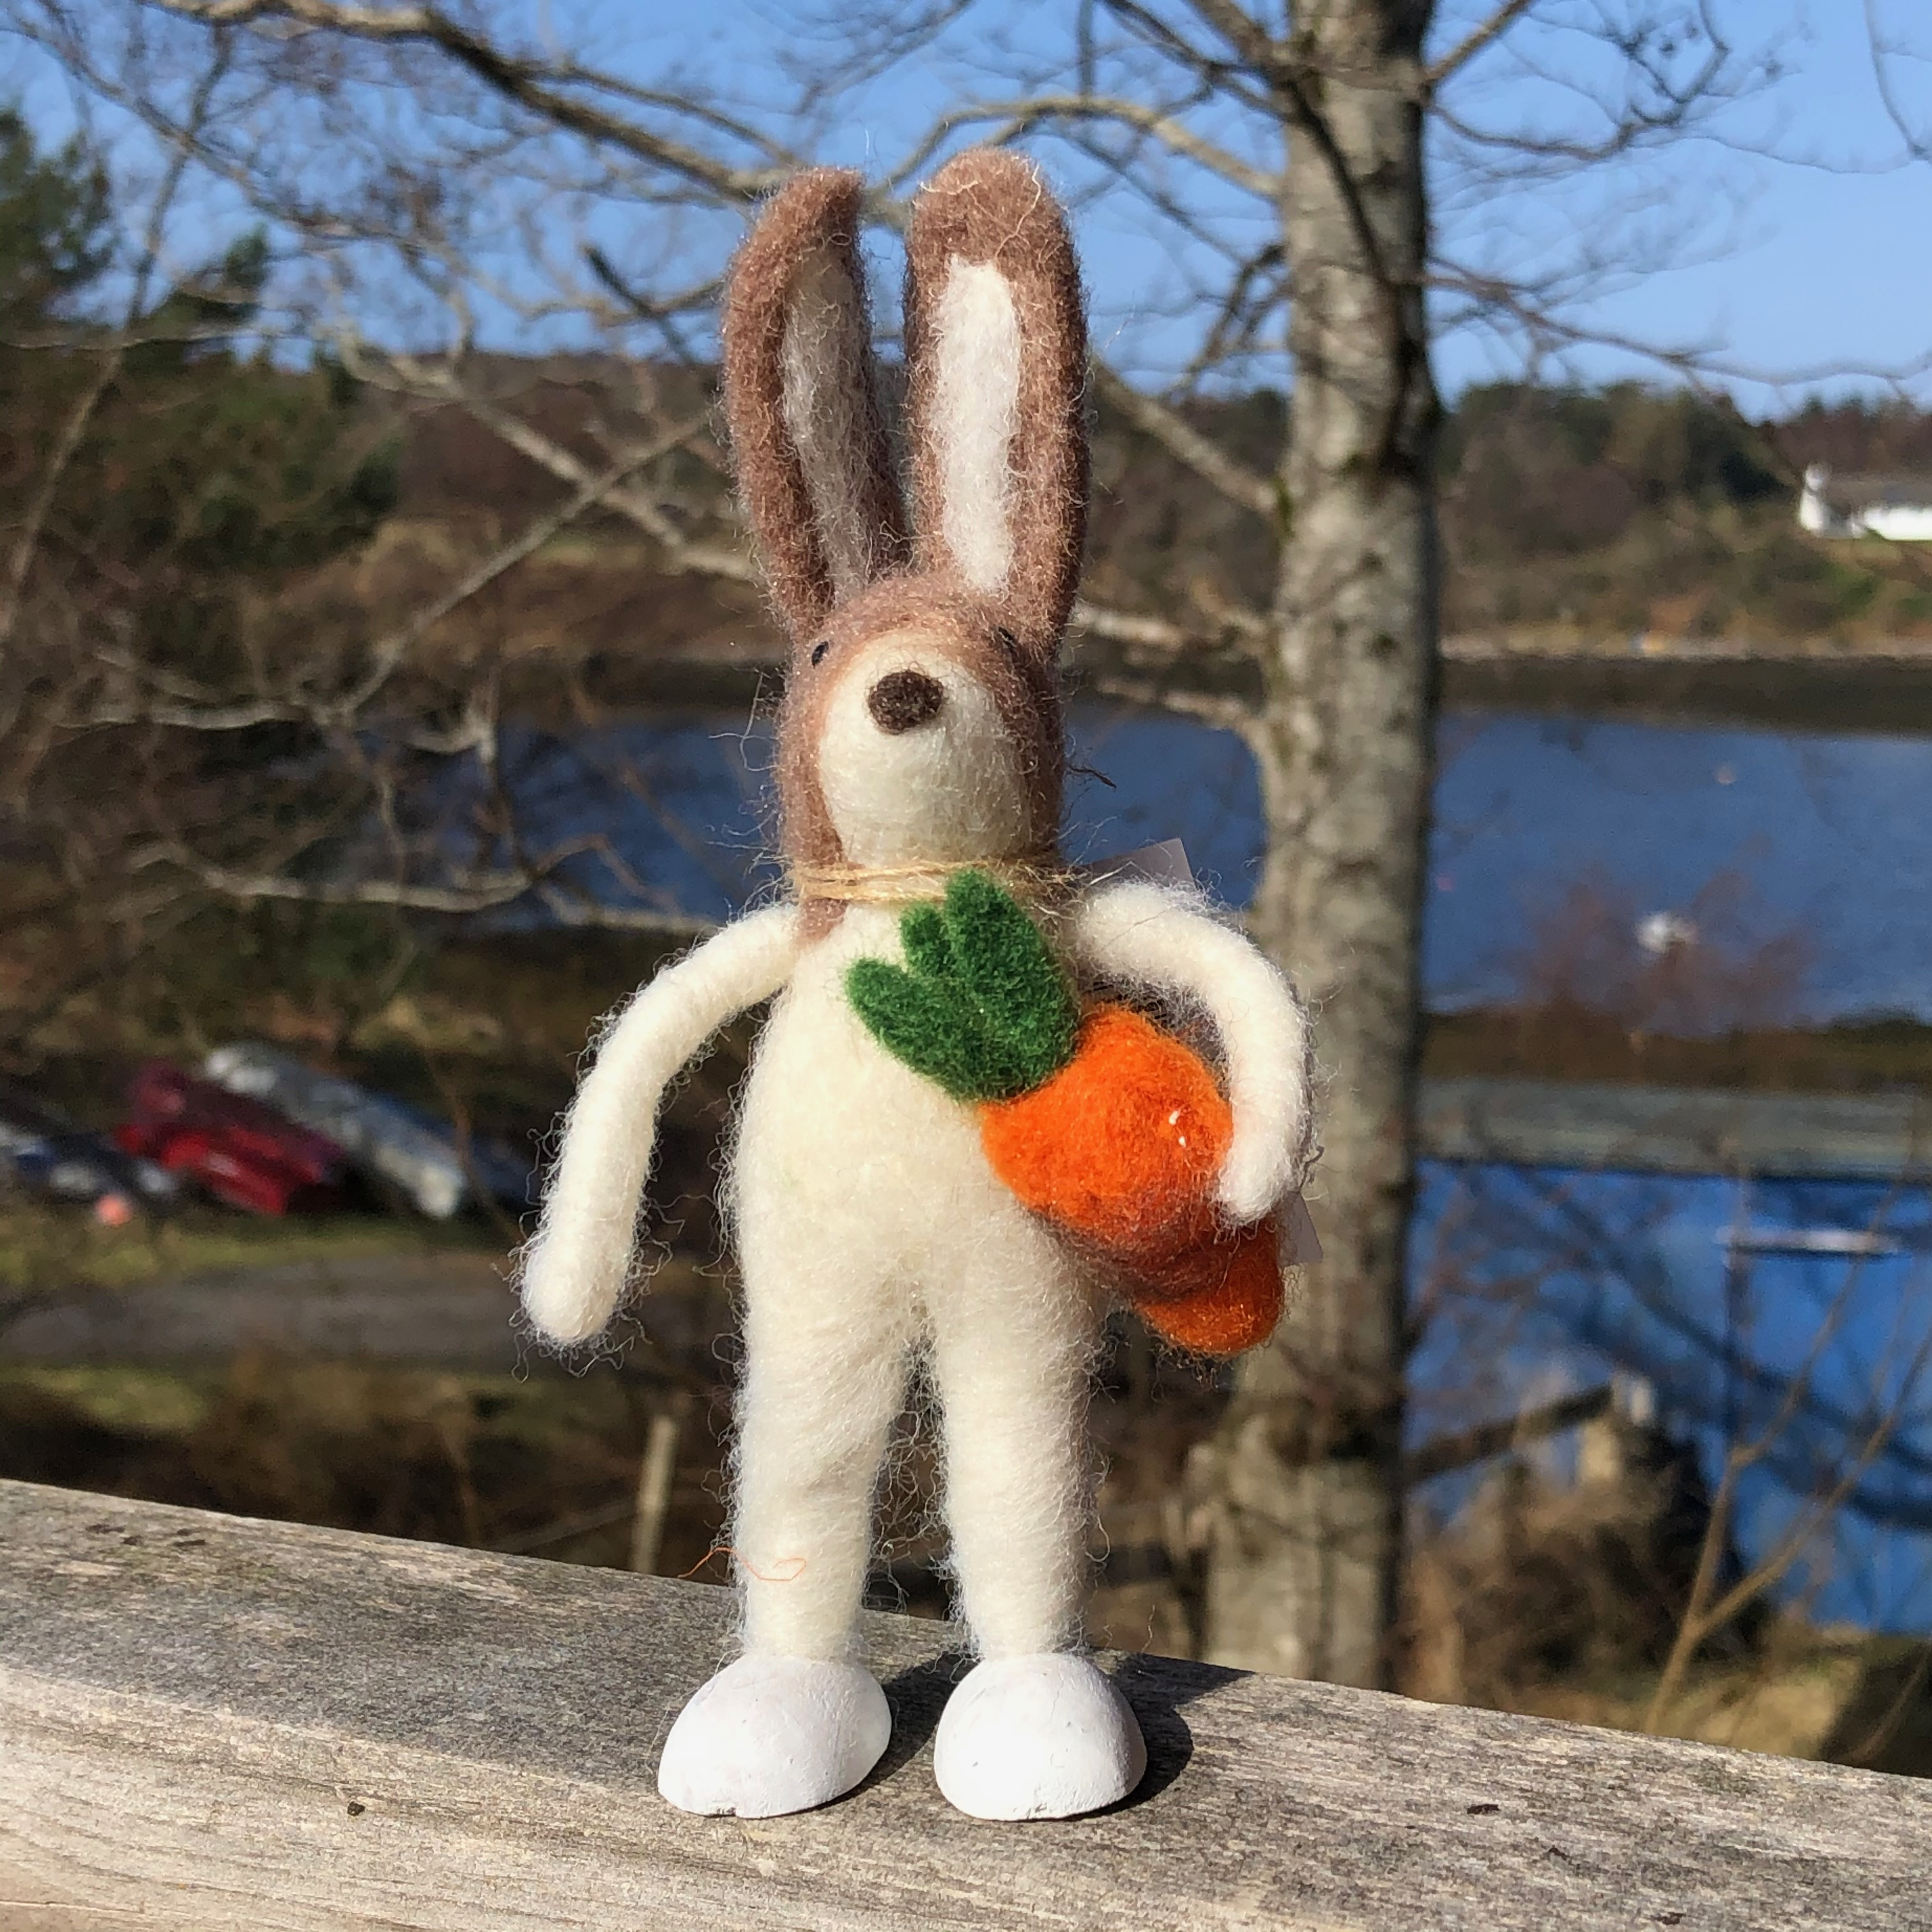 Kevin & the Carrot Bunny